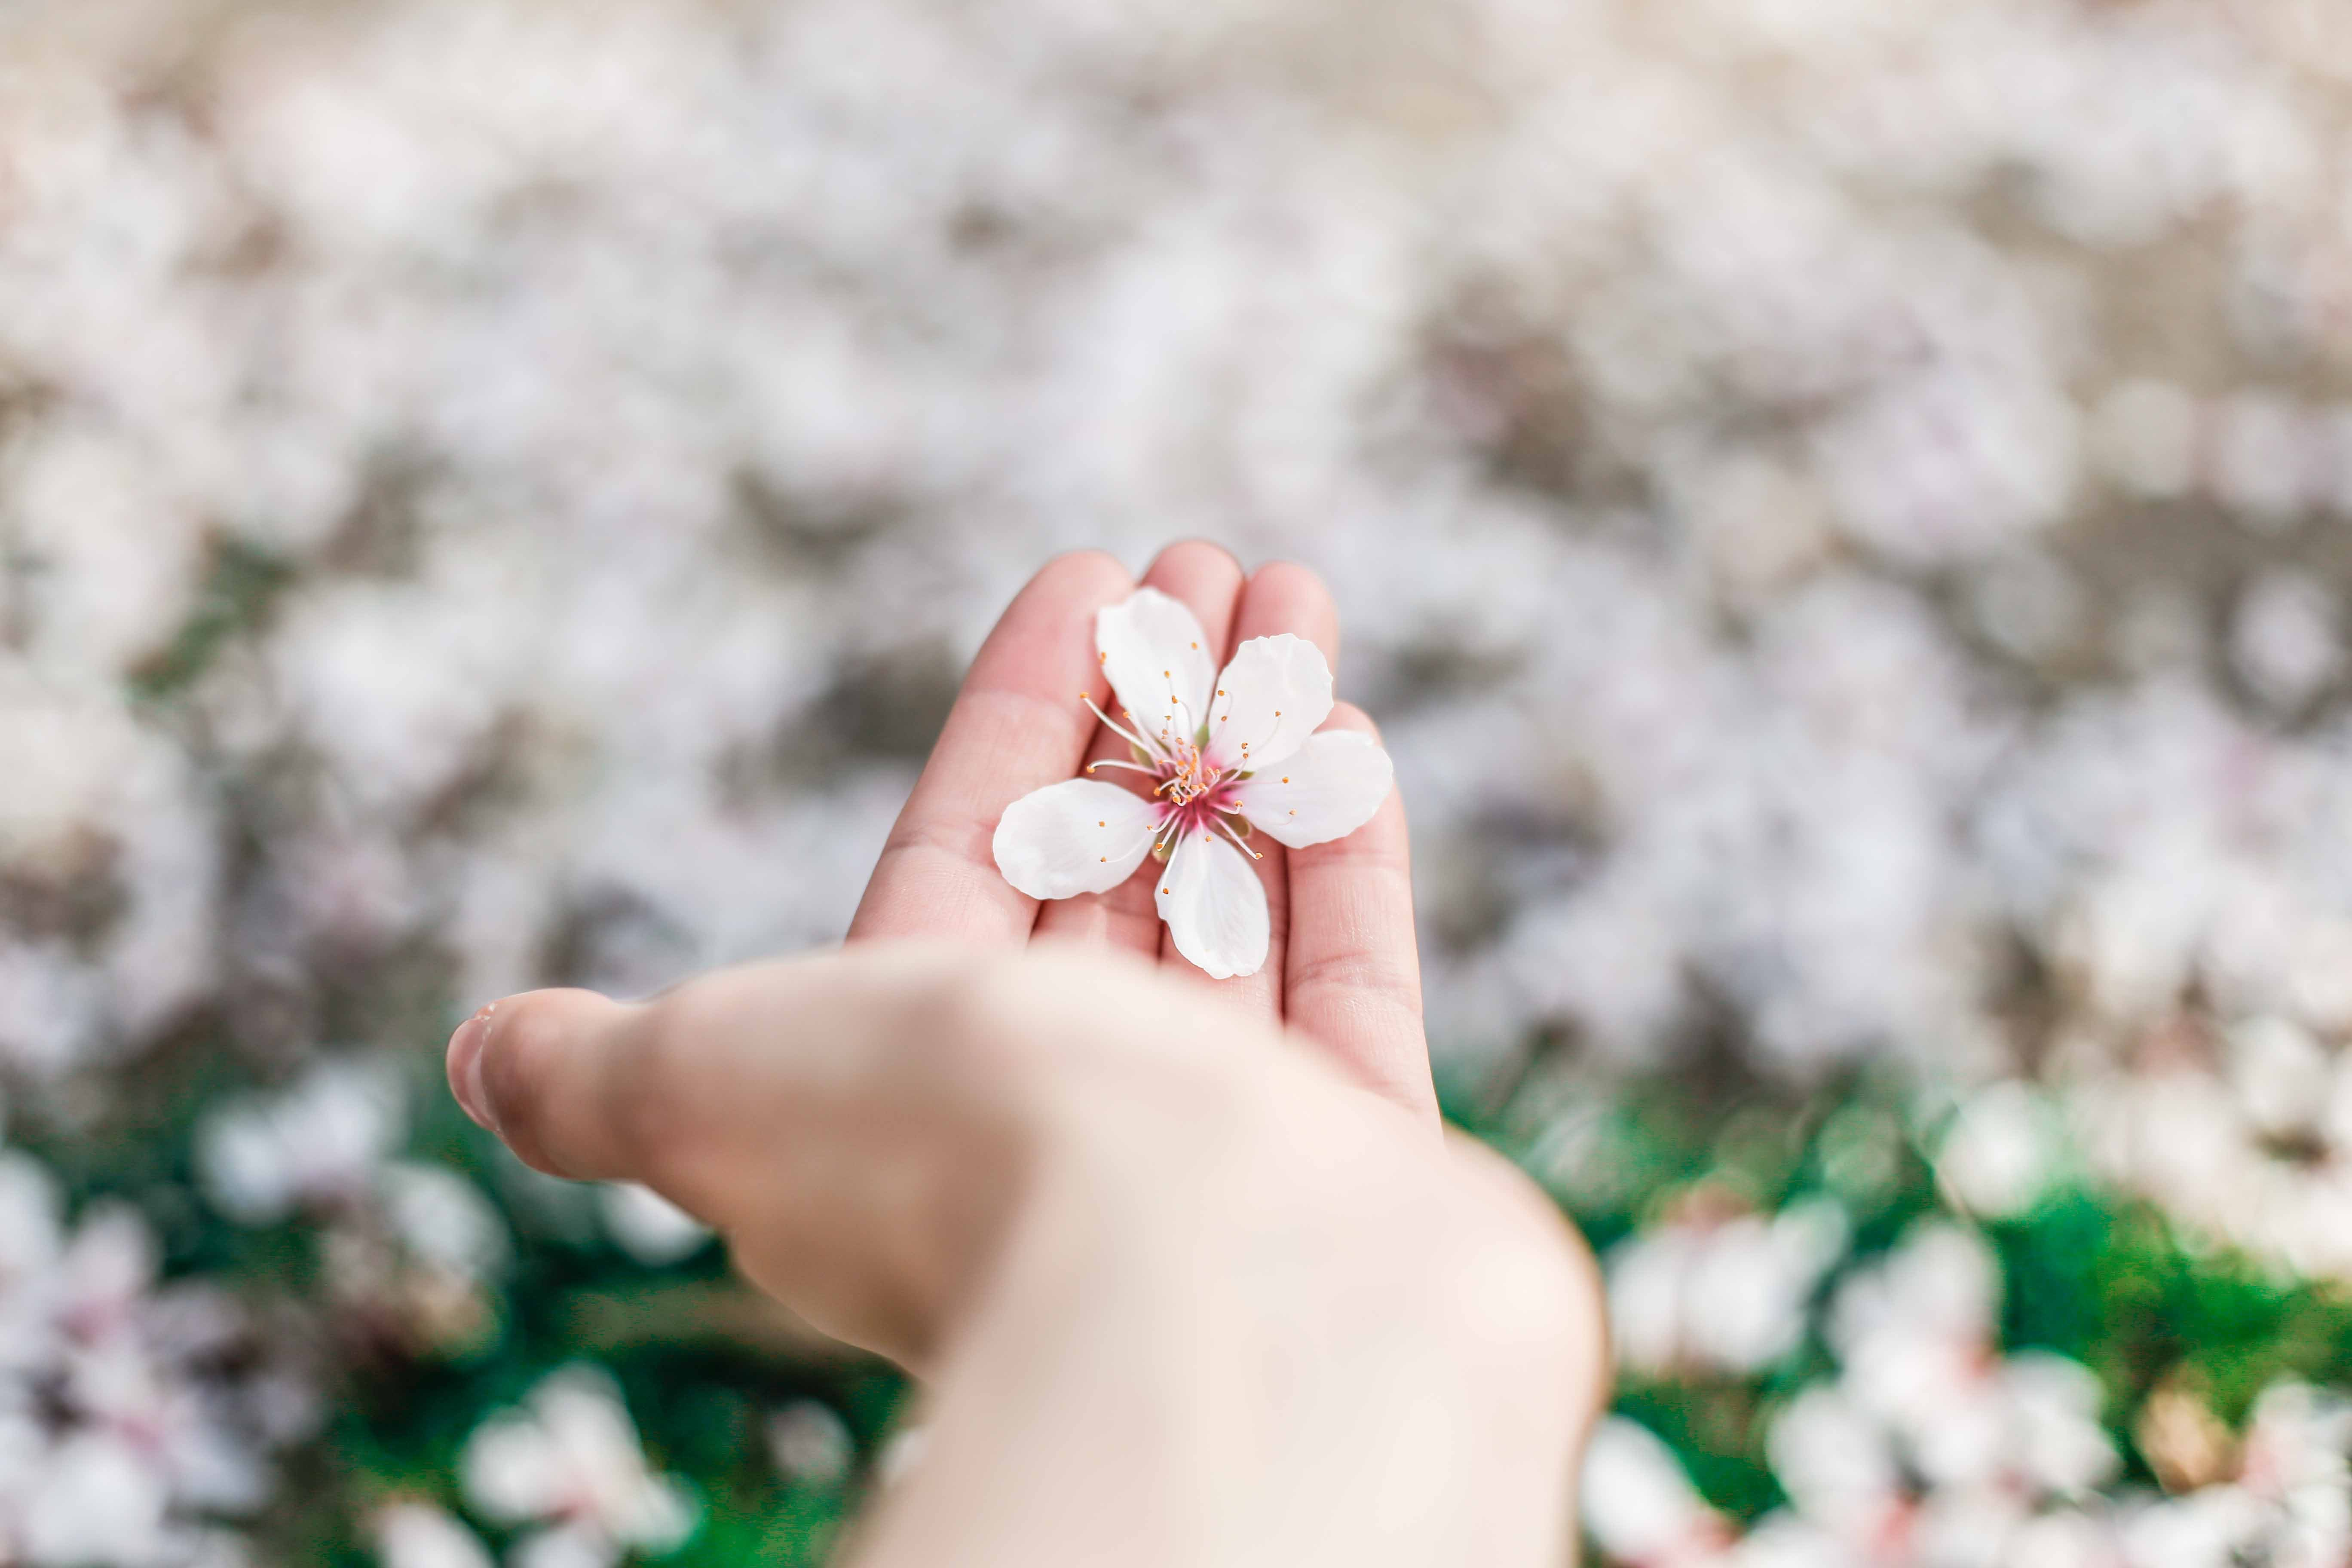 shallow focus photography of white petal flowers on person's hand